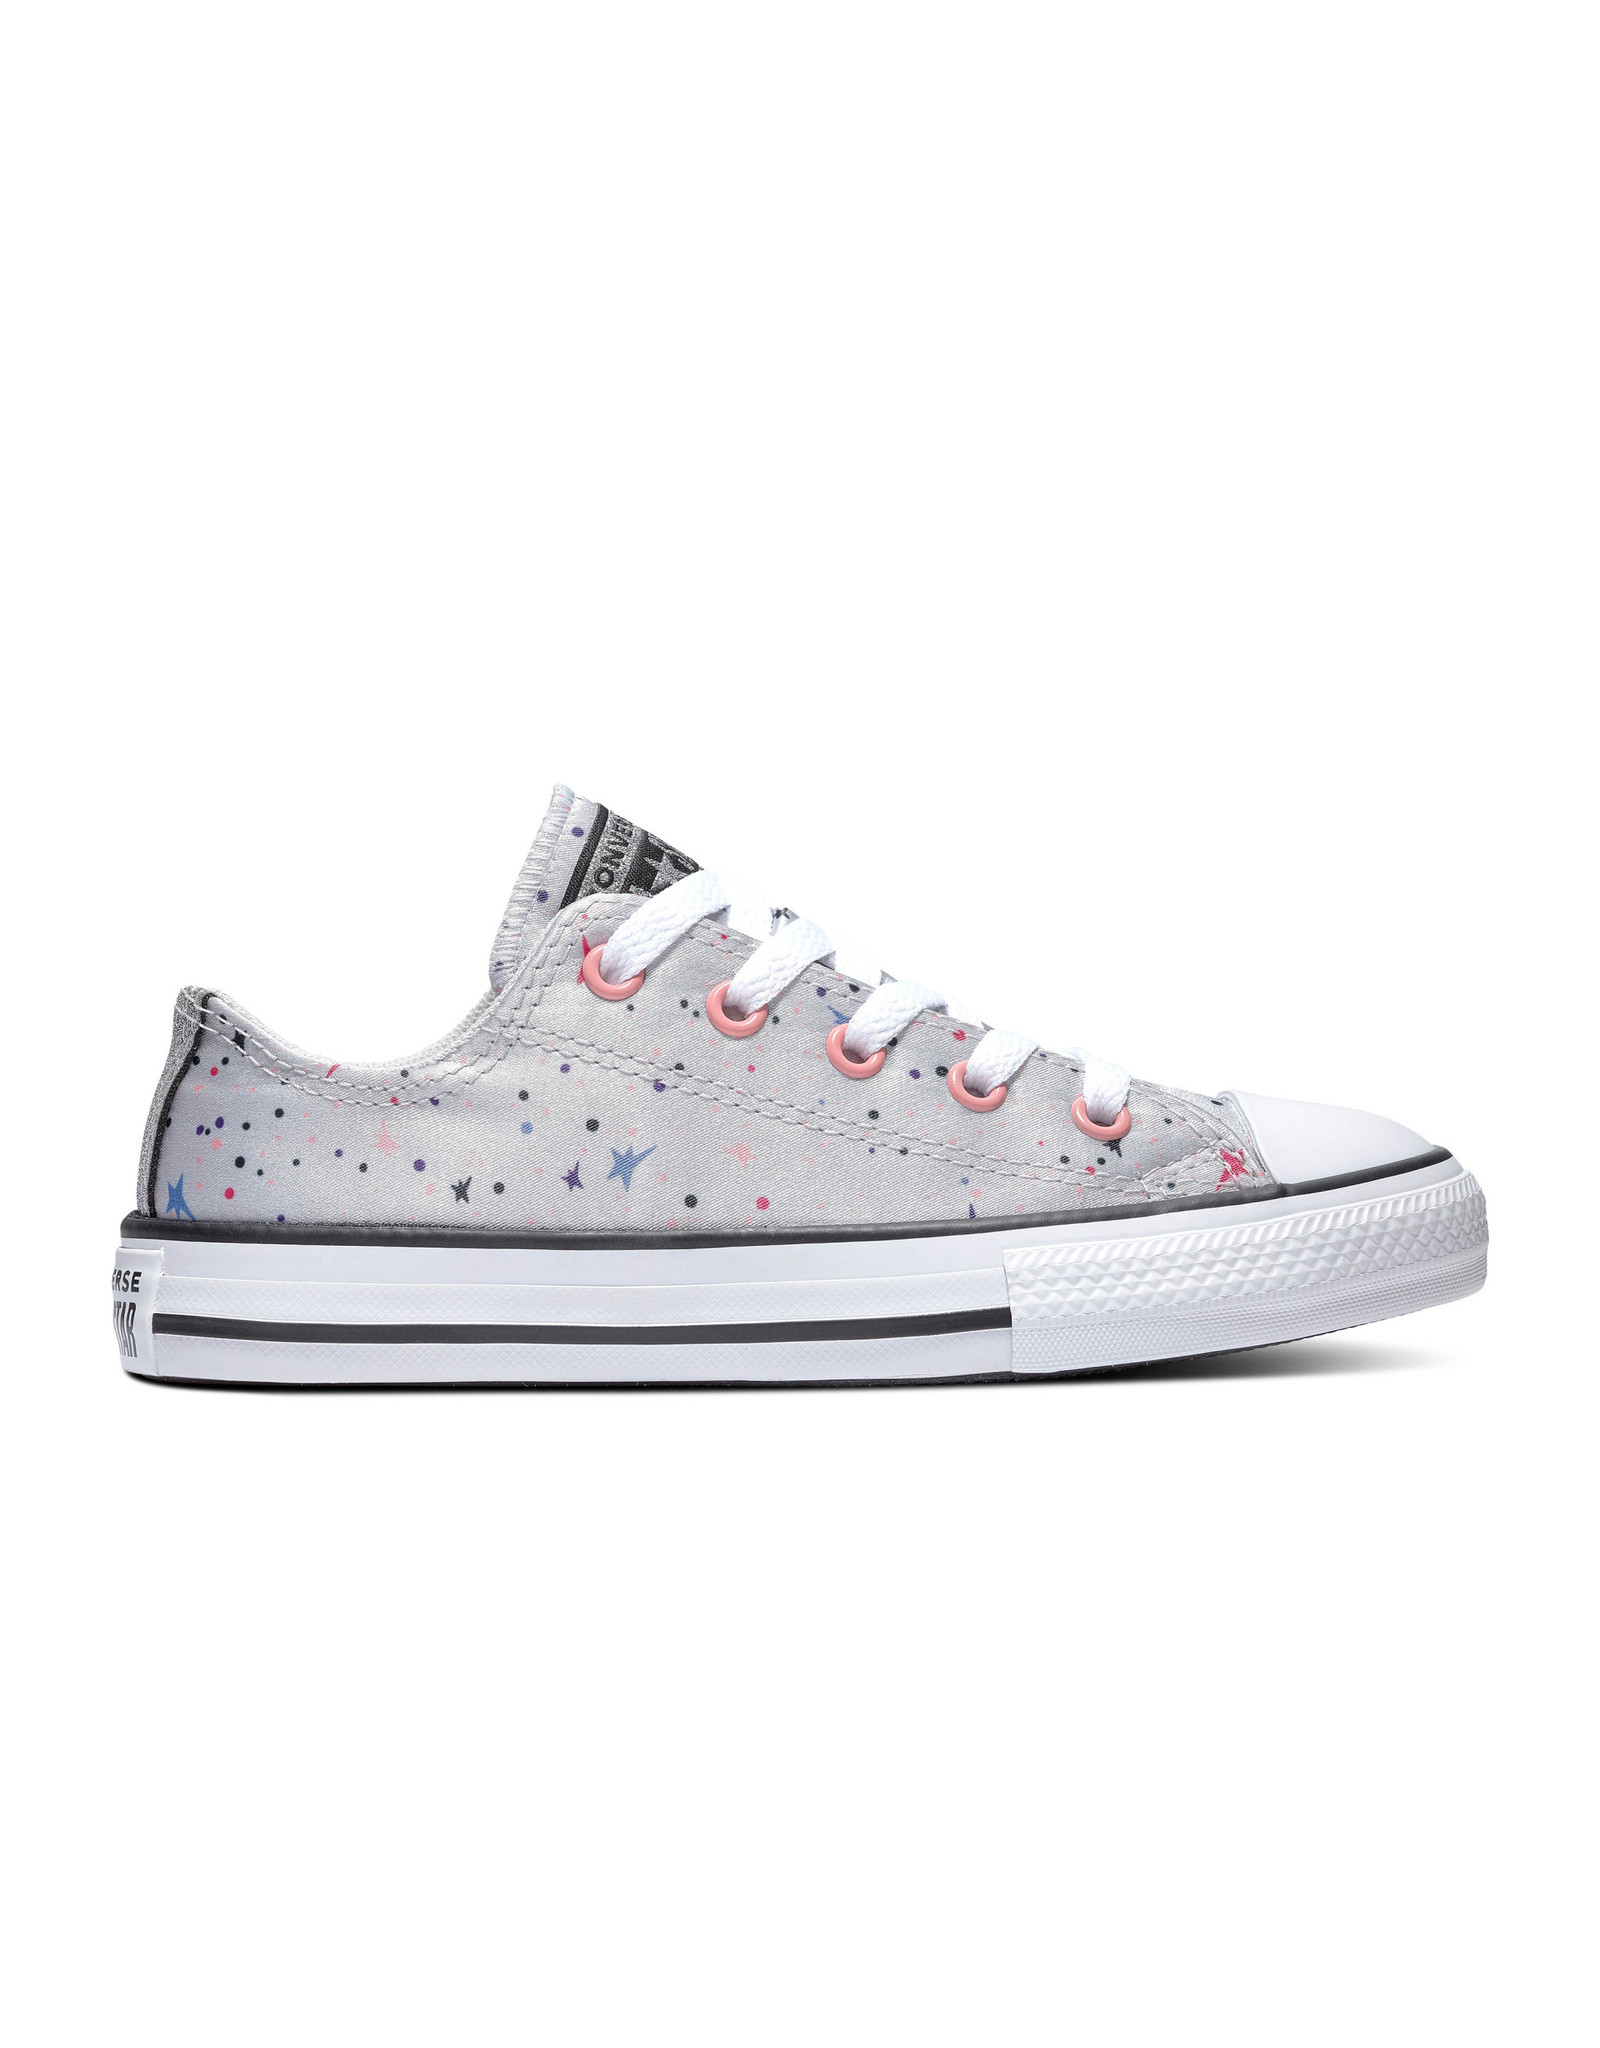 CONVERSE CHUCK TAYLOR ALL STAR OX MOUSE/BLACK/WHITE CZMOU-665360C